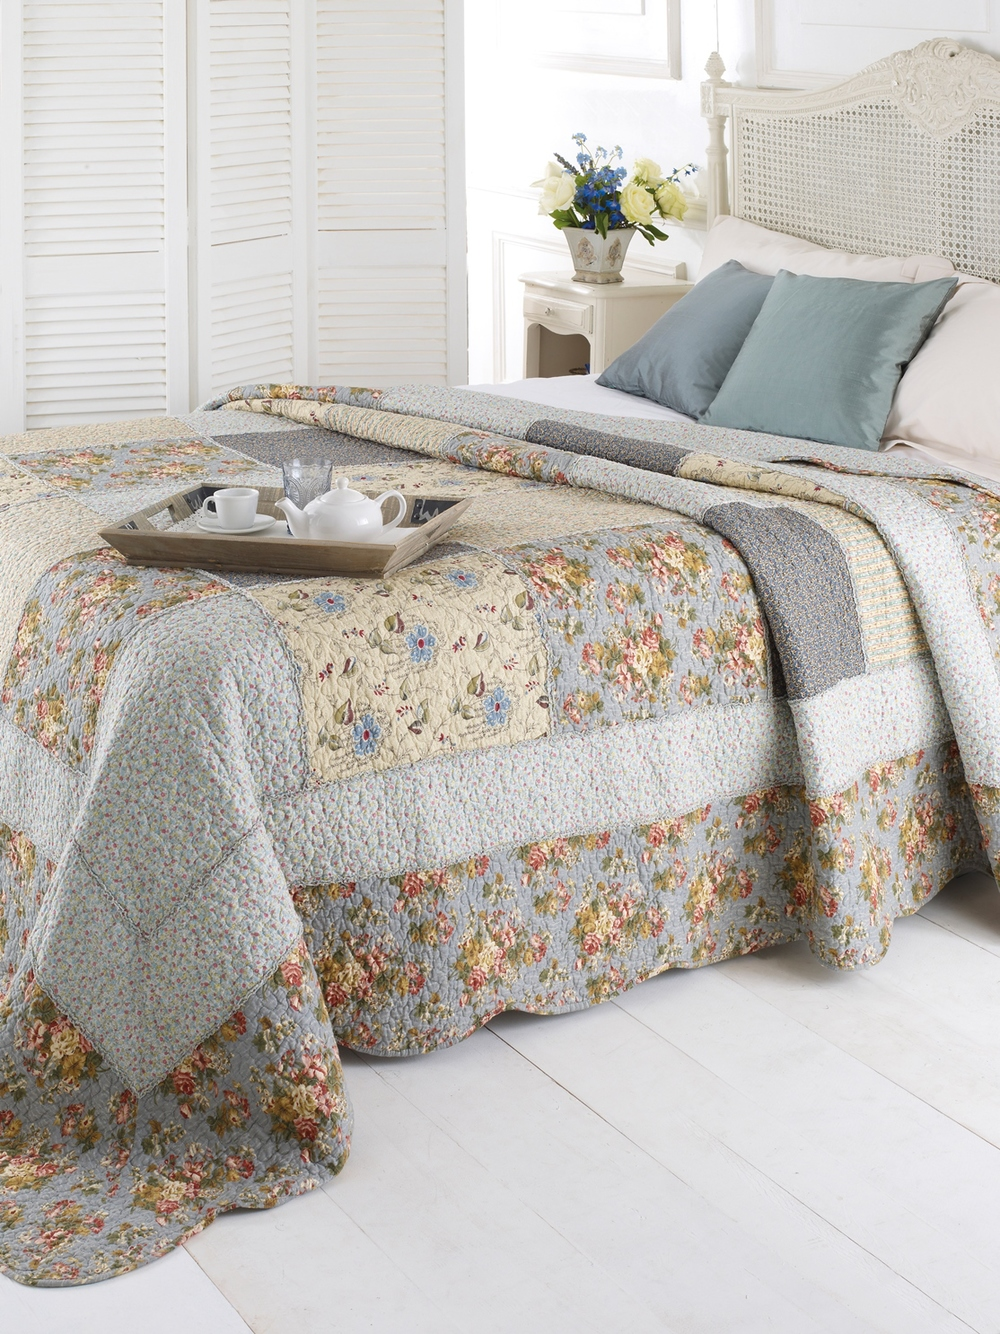 Zoe Quilt Lifestyleresized.jpg